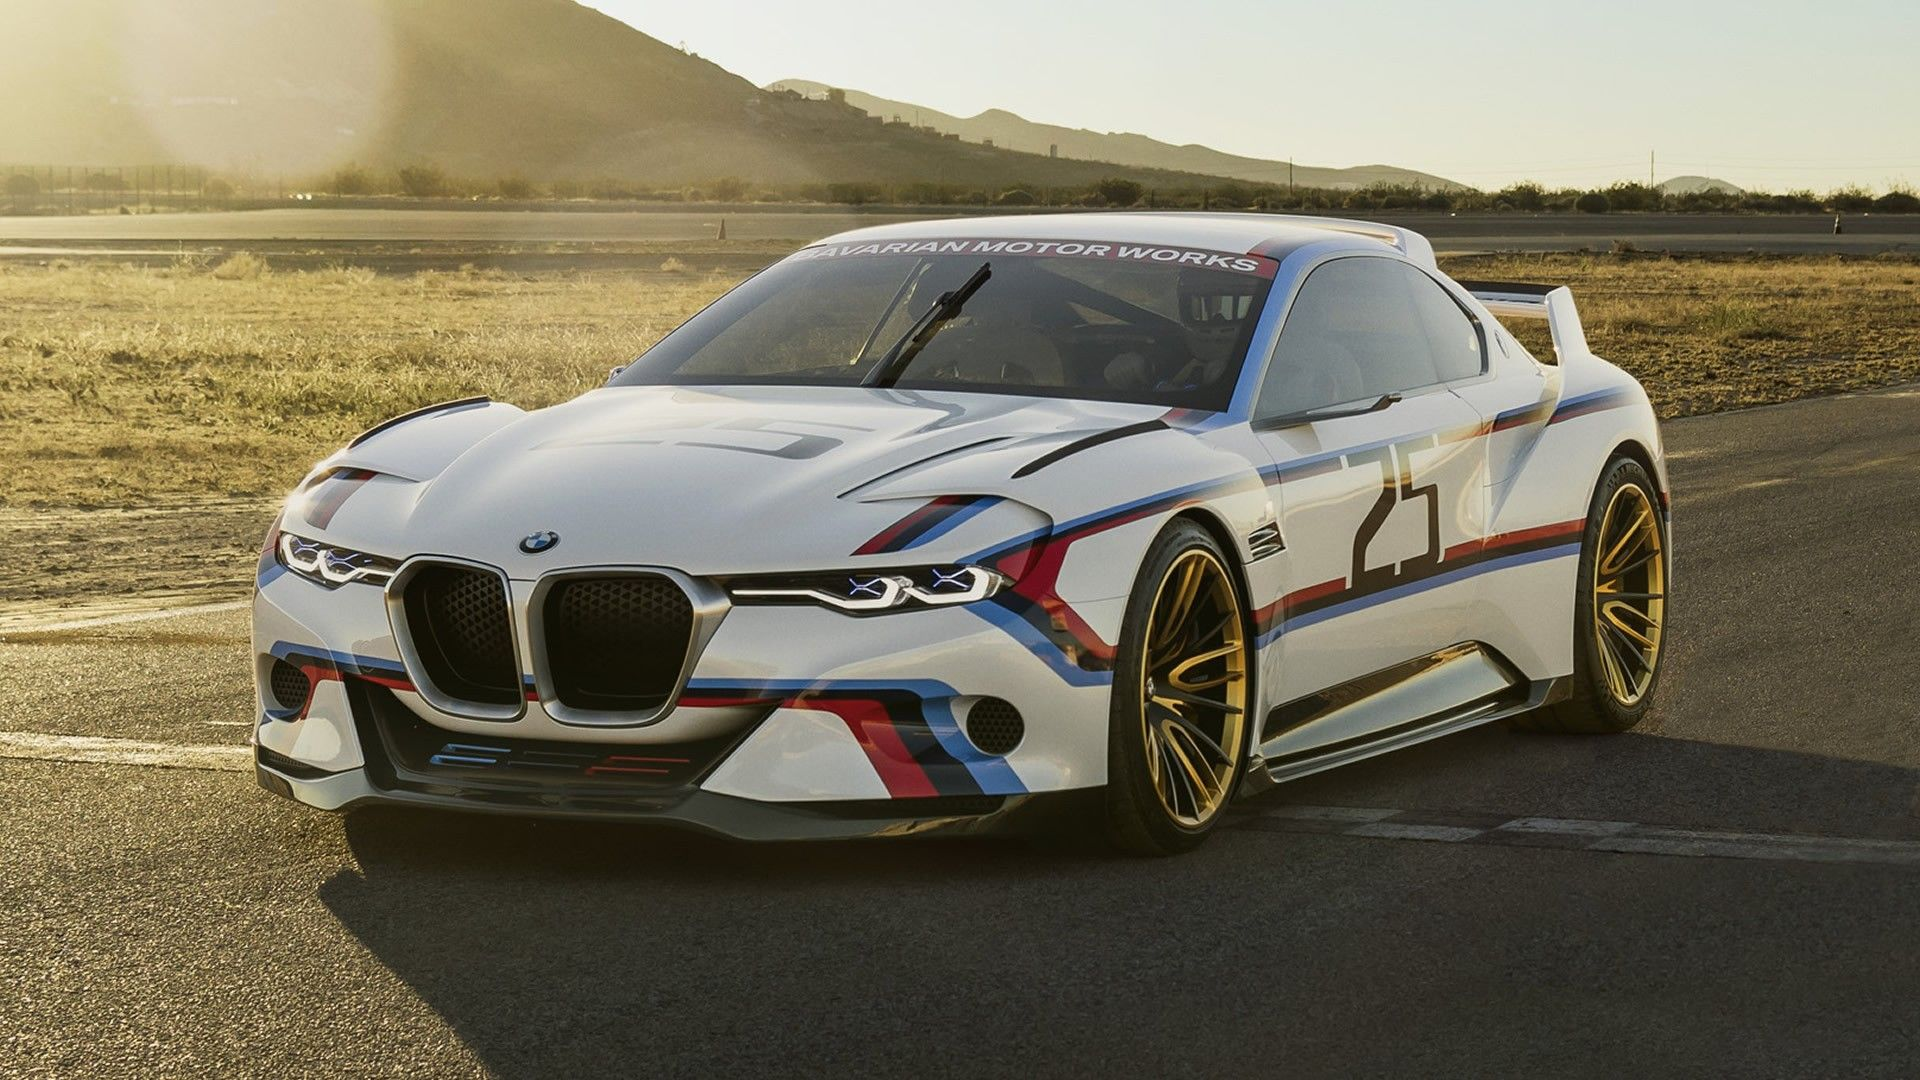 Bmw 3 0 Csl Hommage R Hq Backgrounds Hd Wallpapers Gallery Gallsource Com Bmw 3 0 Csl Bmw Bmw Cars